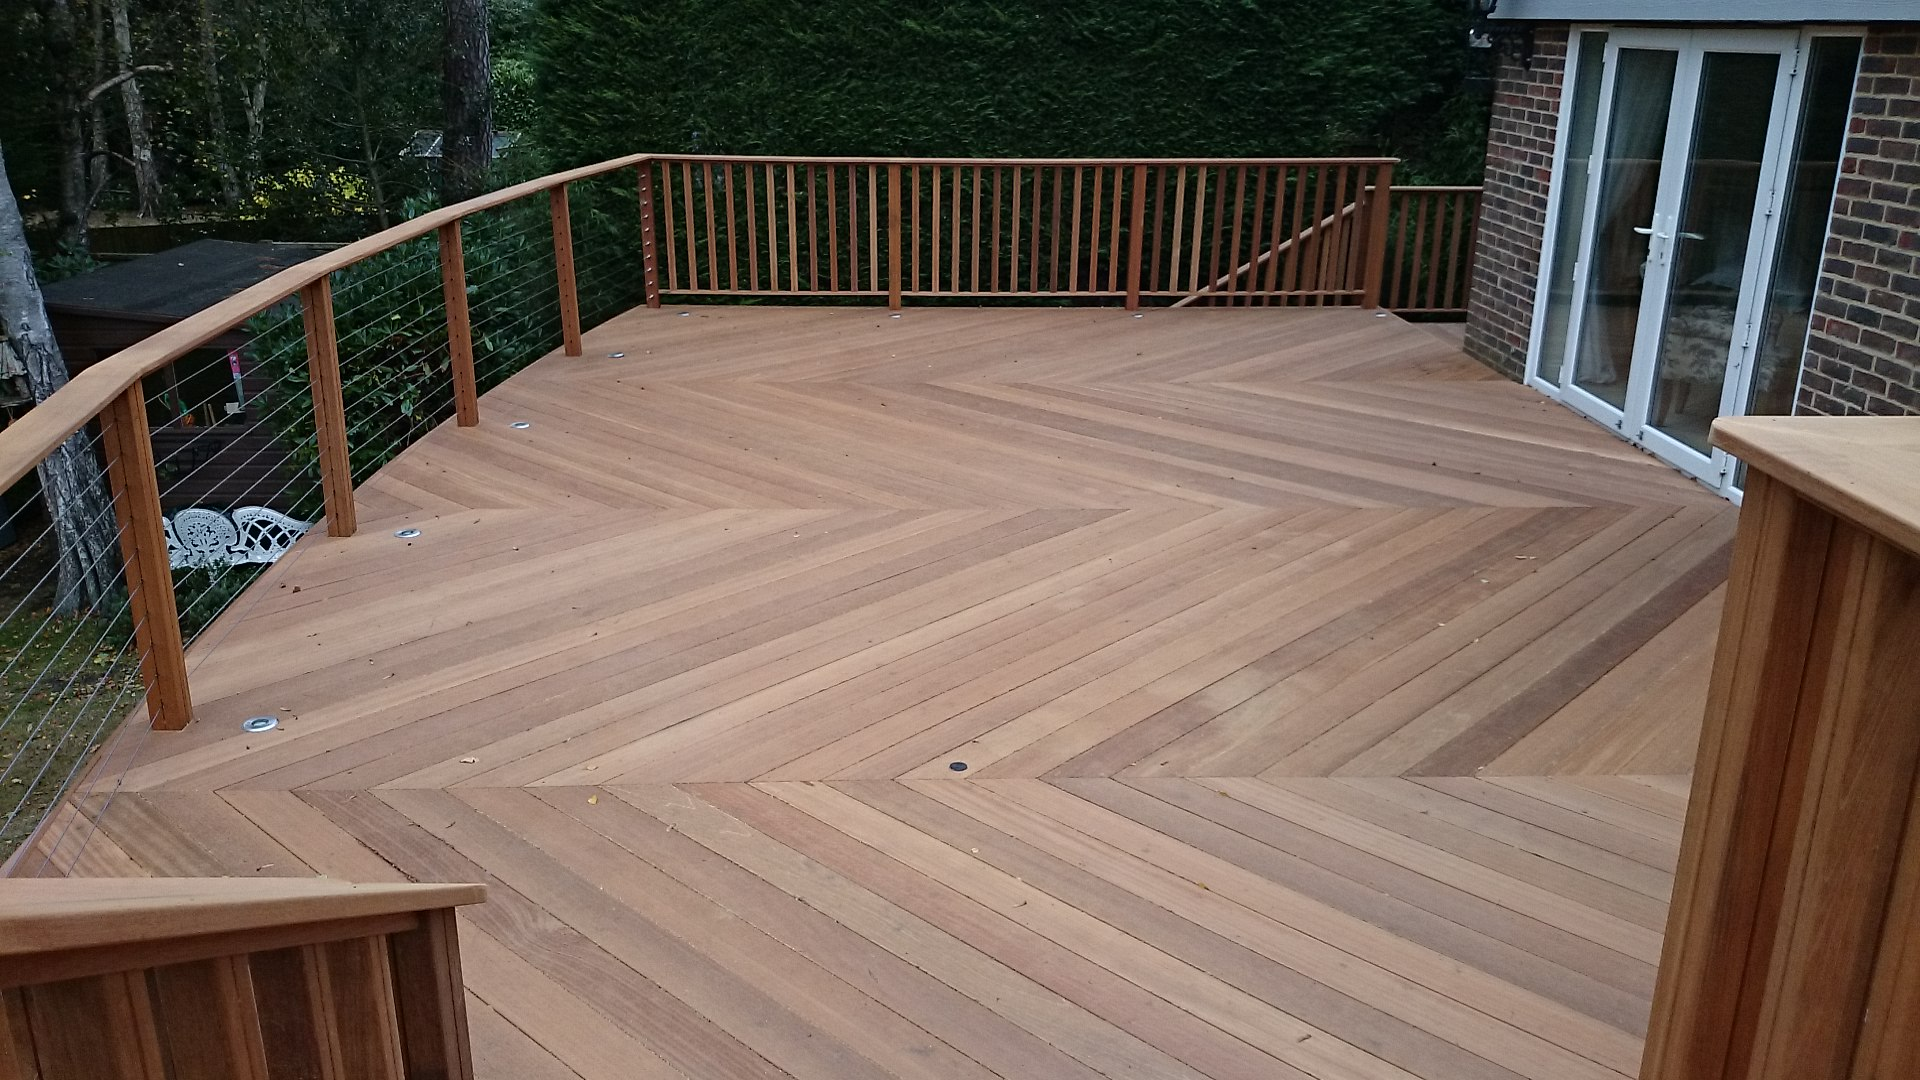 Yellow balau post smooth southgate timber hardwood for Smooth hardwood decking boards